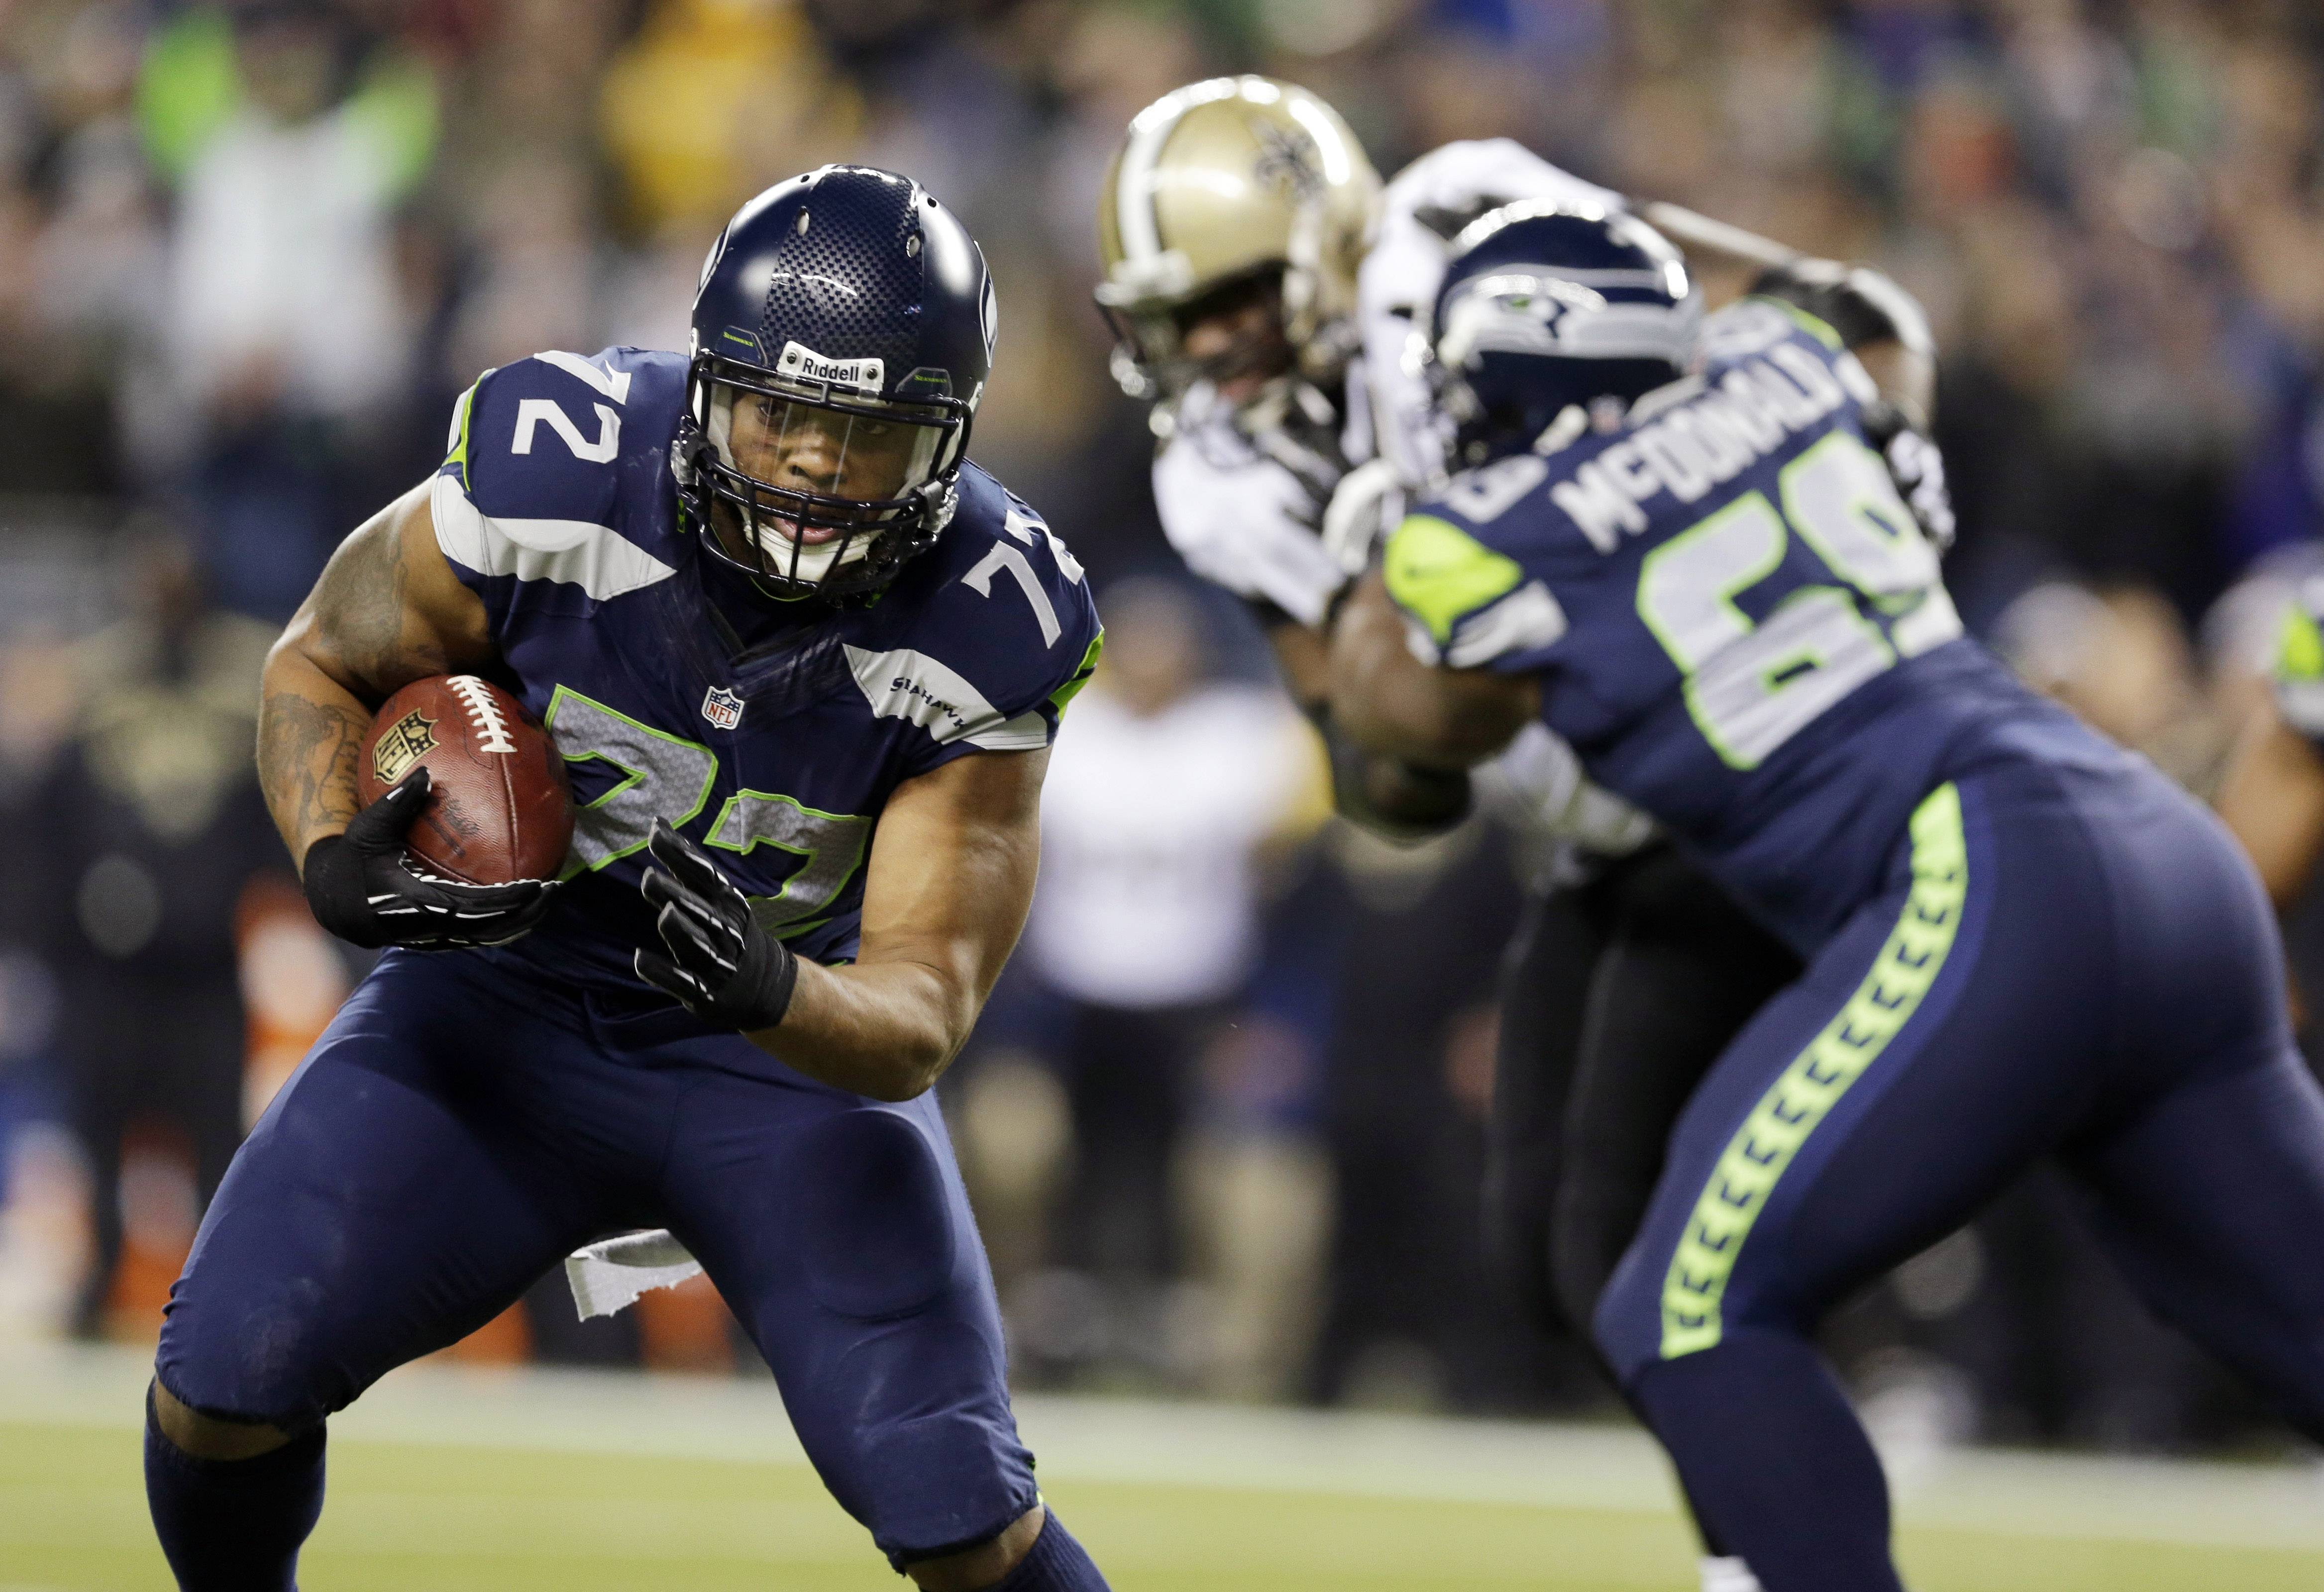 Seattle defensive end Michael Bennett returns a fumble for a touchdown during a game against the Saints last season. The Seahawks announced Monday that Bennett had signed a multiyear deal with the team.